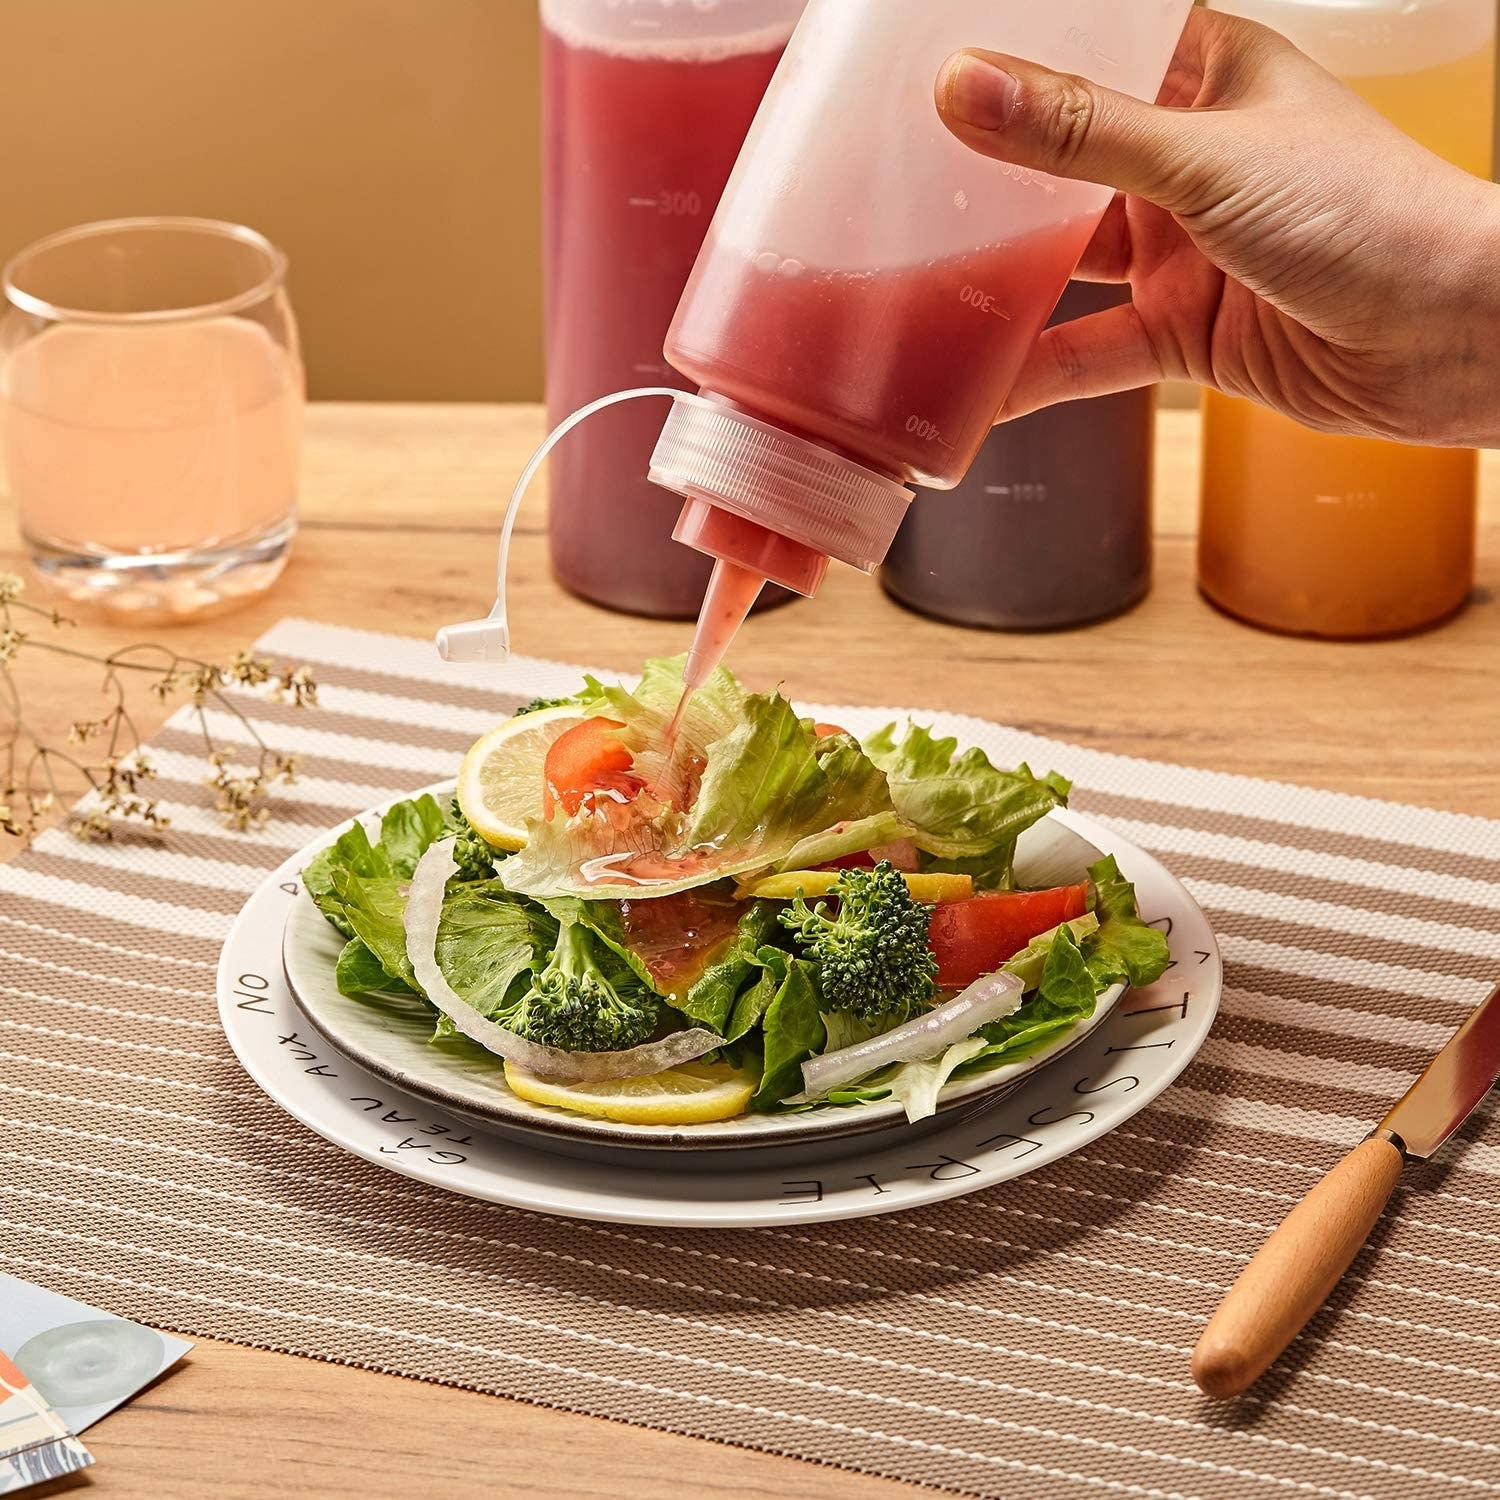 A squeeze bottle squeezes dressing onto a salad